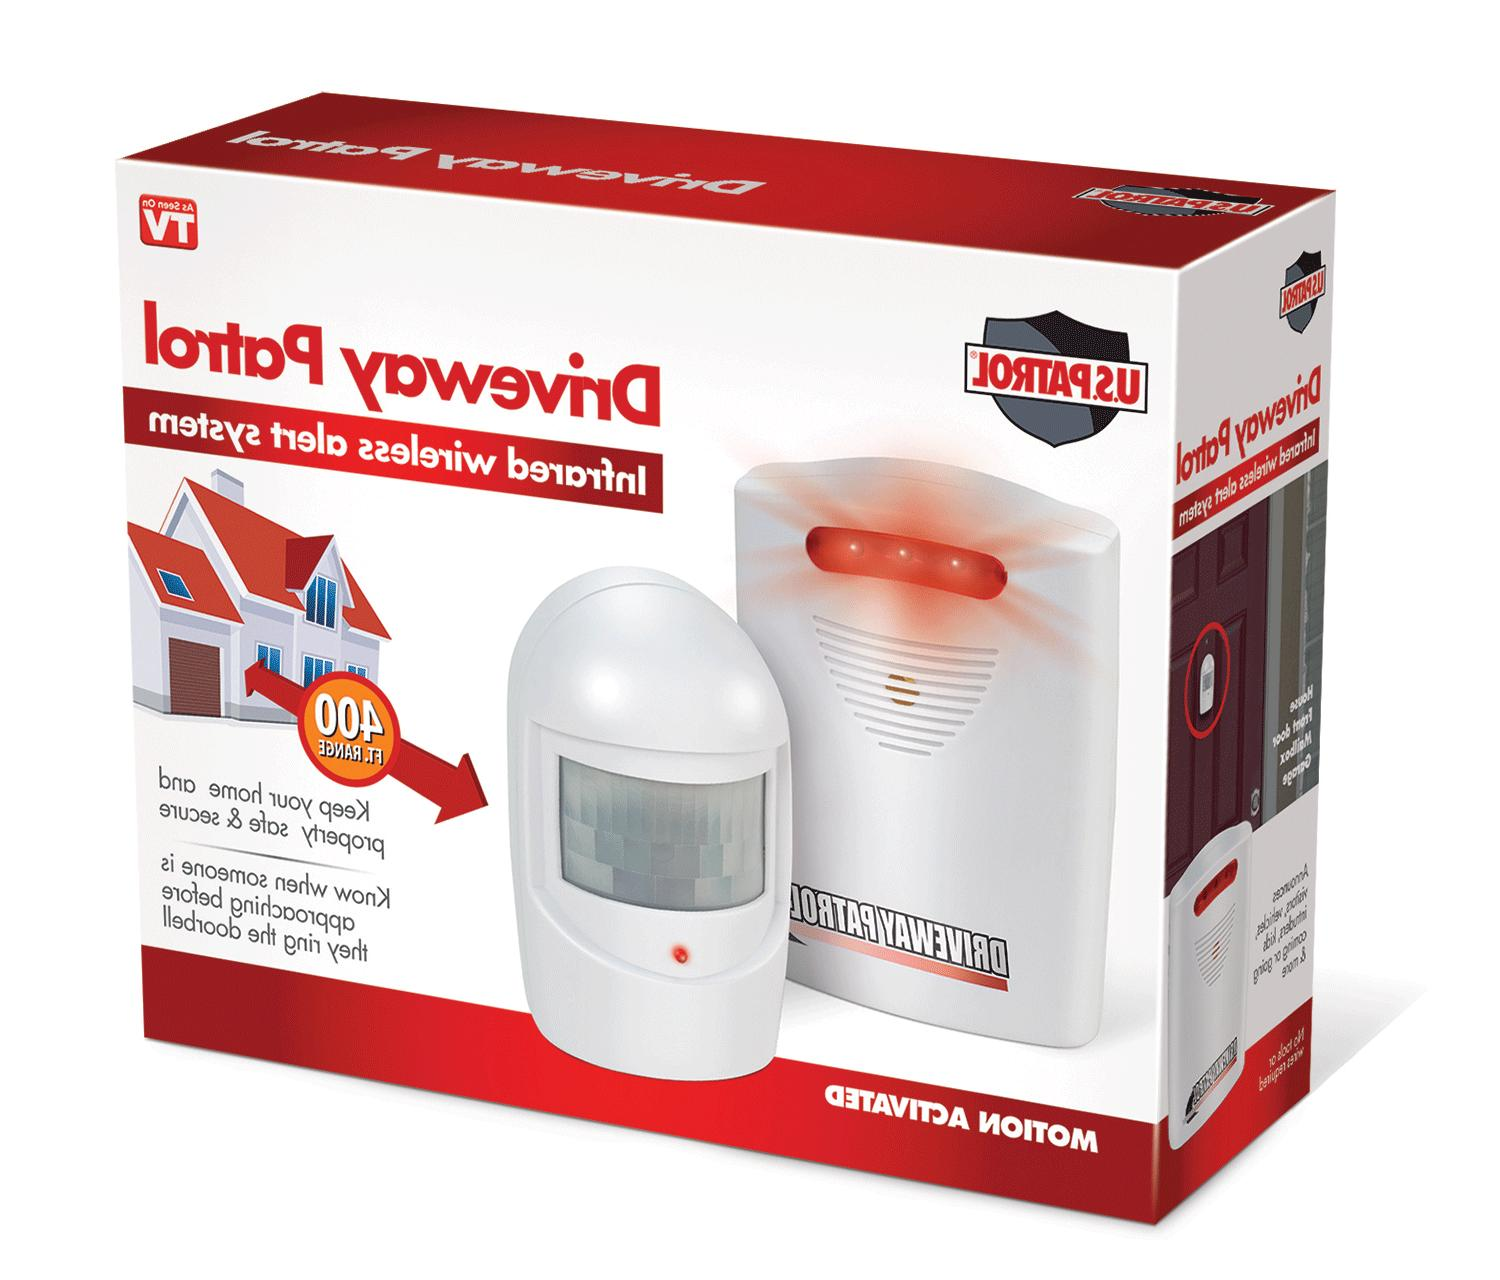 Driveway Patrol Garage Motion Sensor Alarm Infrared Wireless